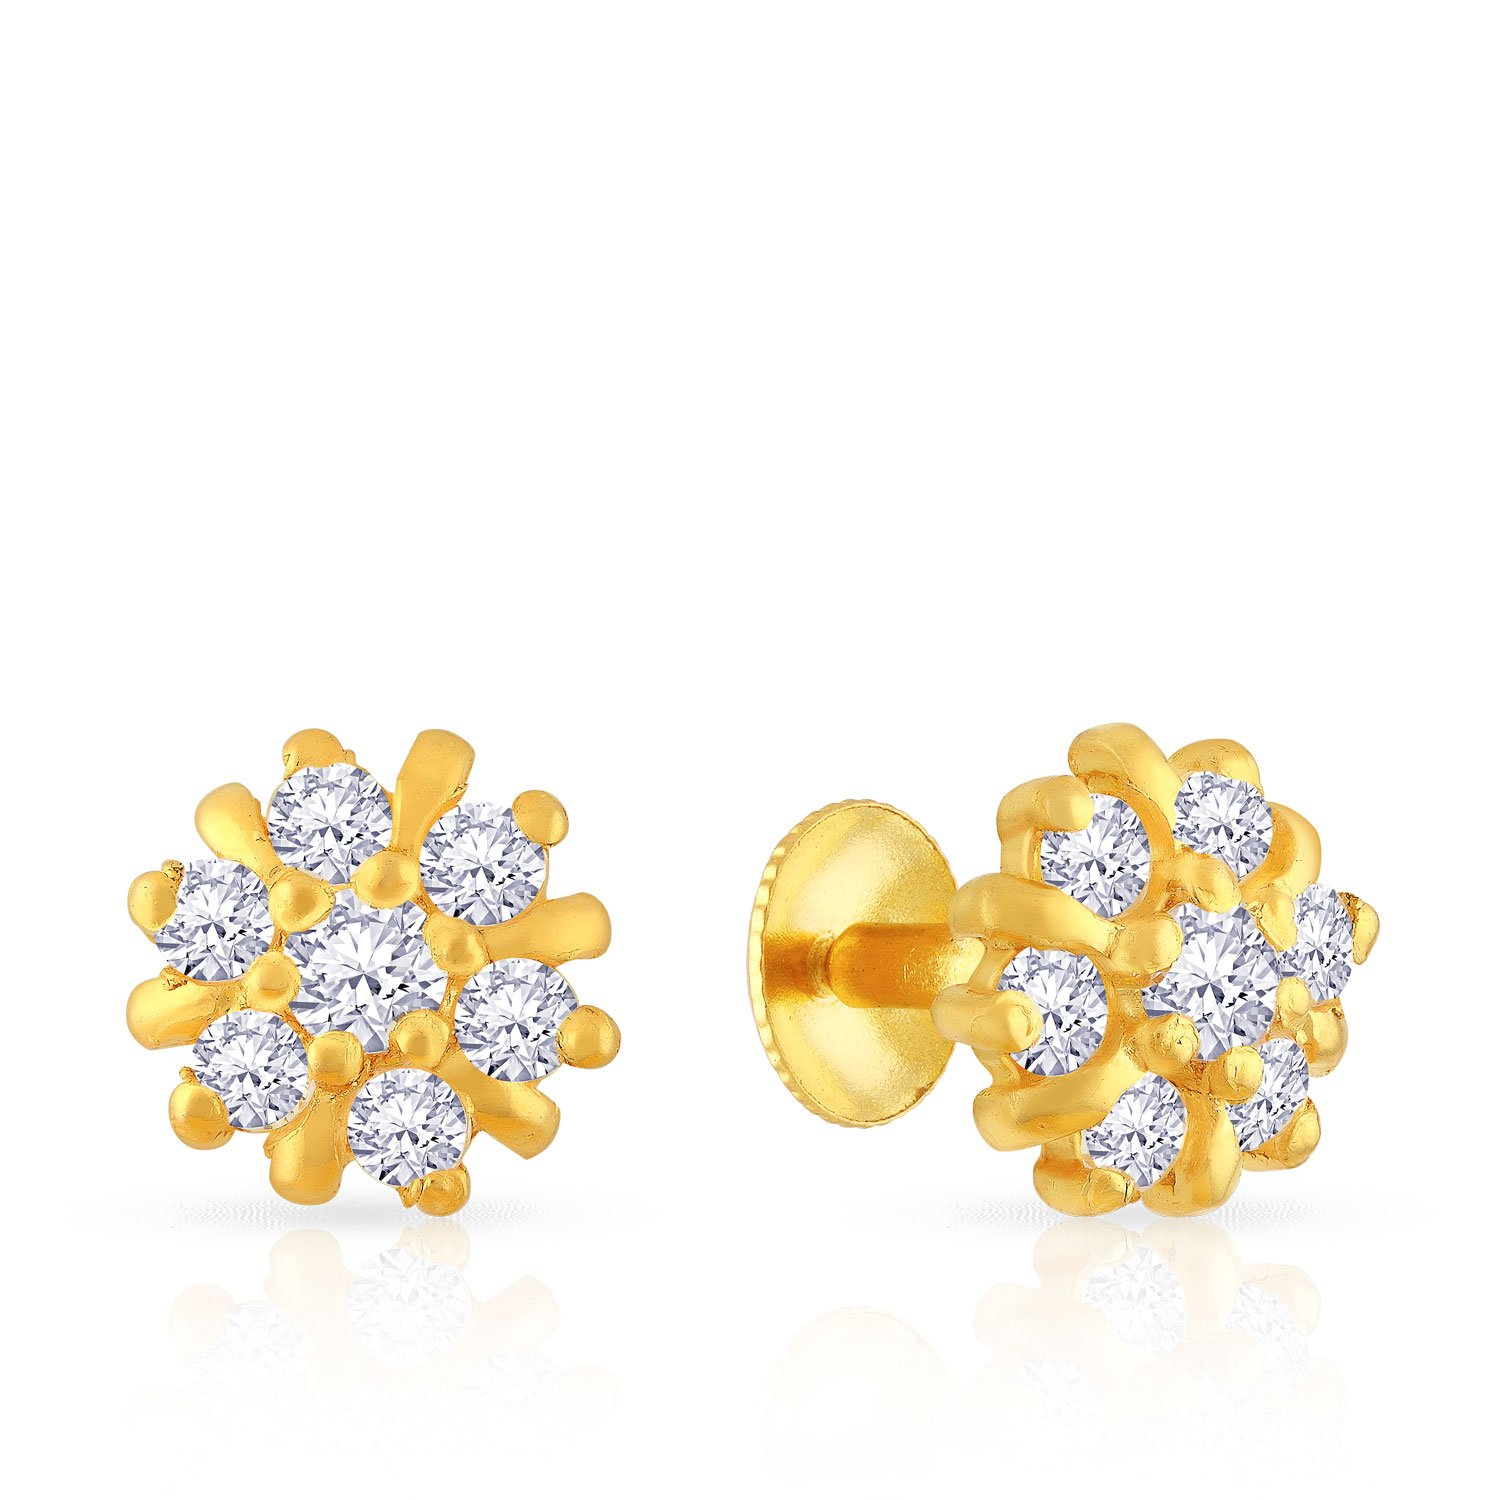 513ca86a5 Malabar Gold and Diamonds 22k (916) Yellow Gold Stud Earrings for Women -  Gia Designer